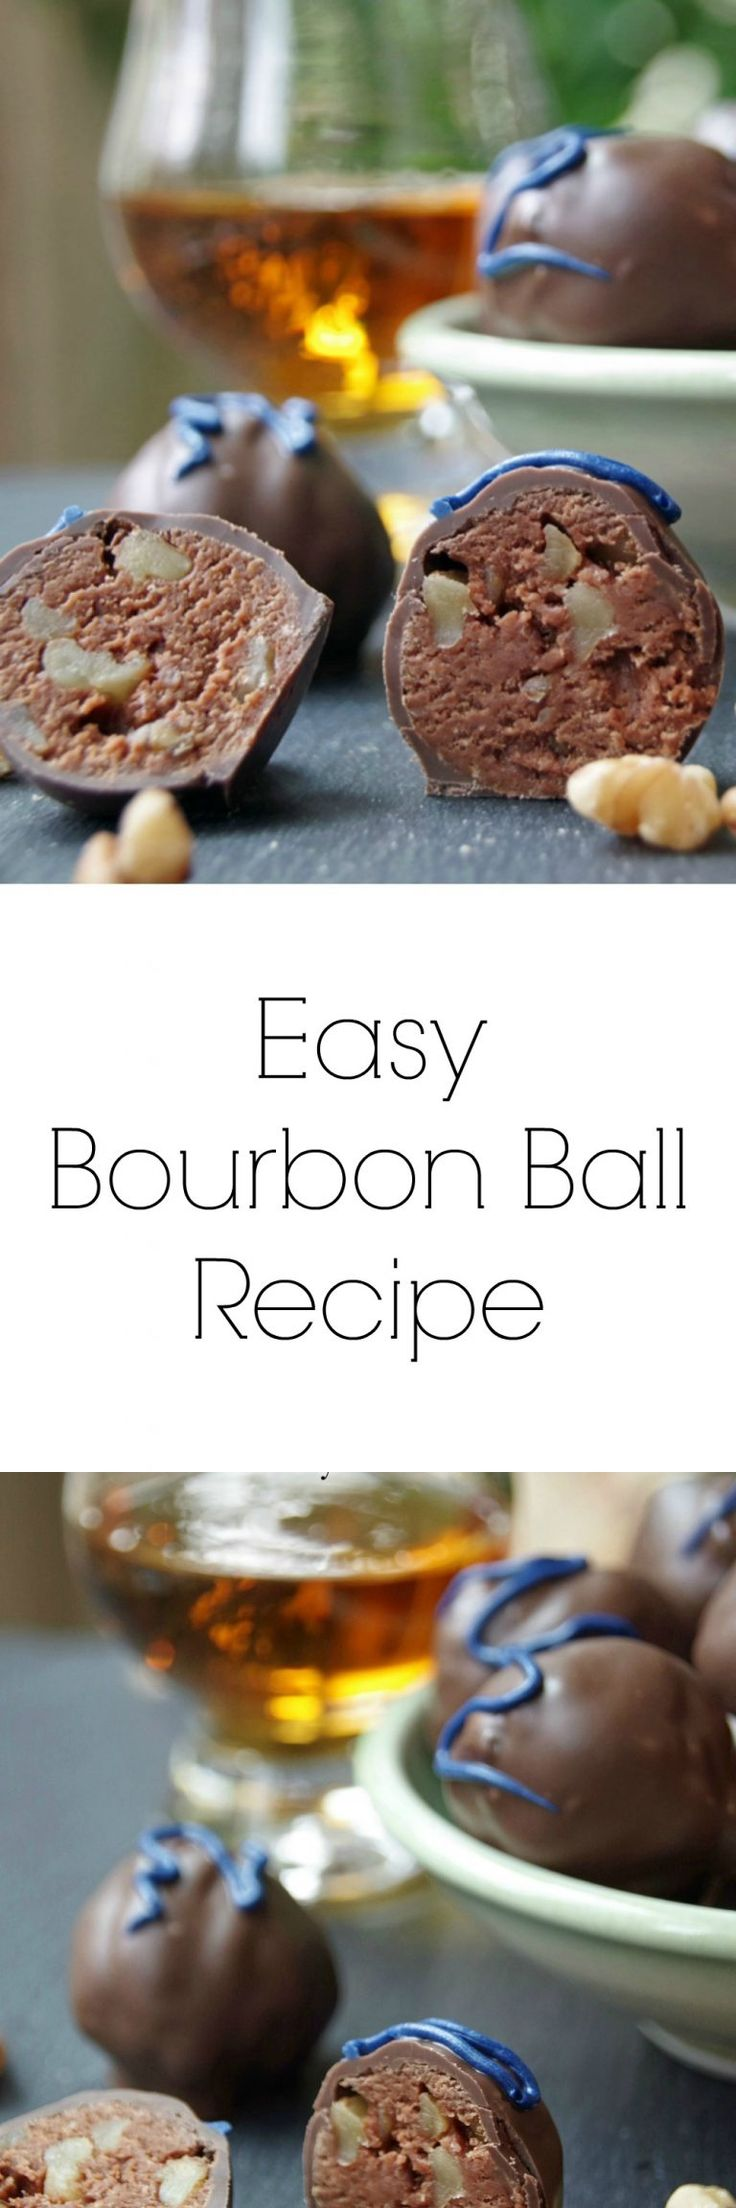 Need an easy bourbon ball recipe? This one is simple and quick, with ...